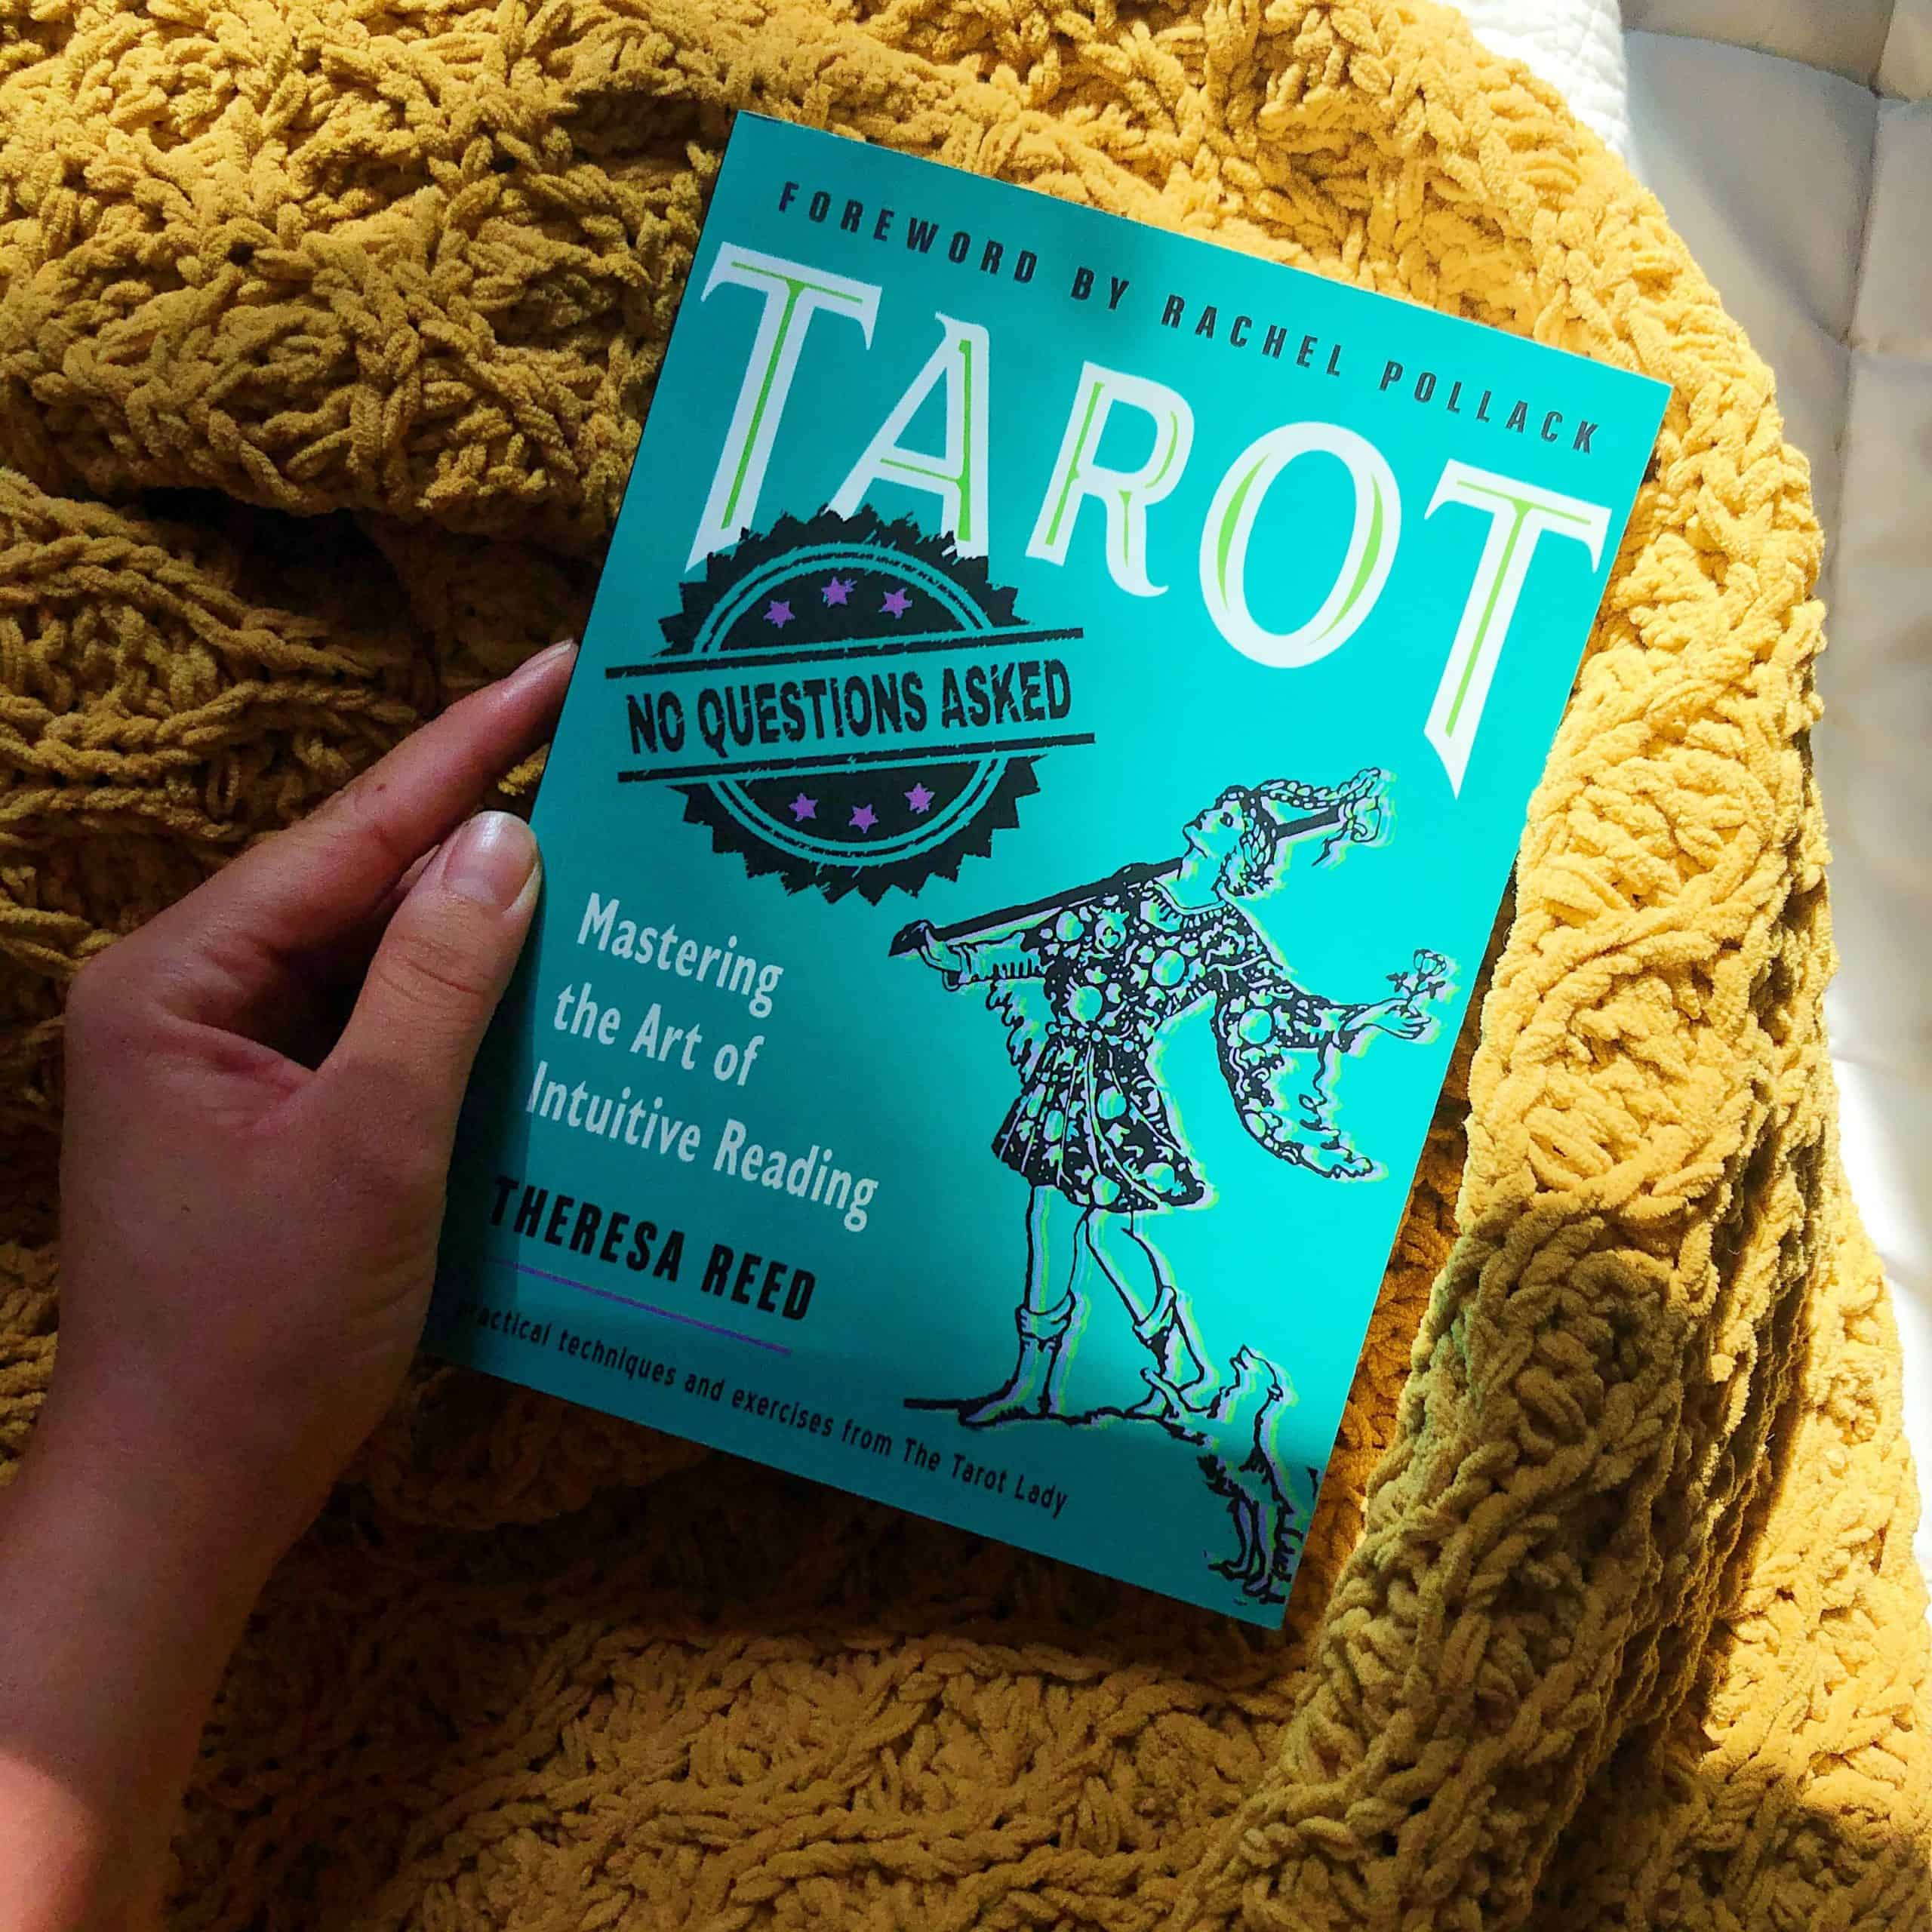 Tarot: No Questions Asked - Mastering the Art of Intuitive Reading